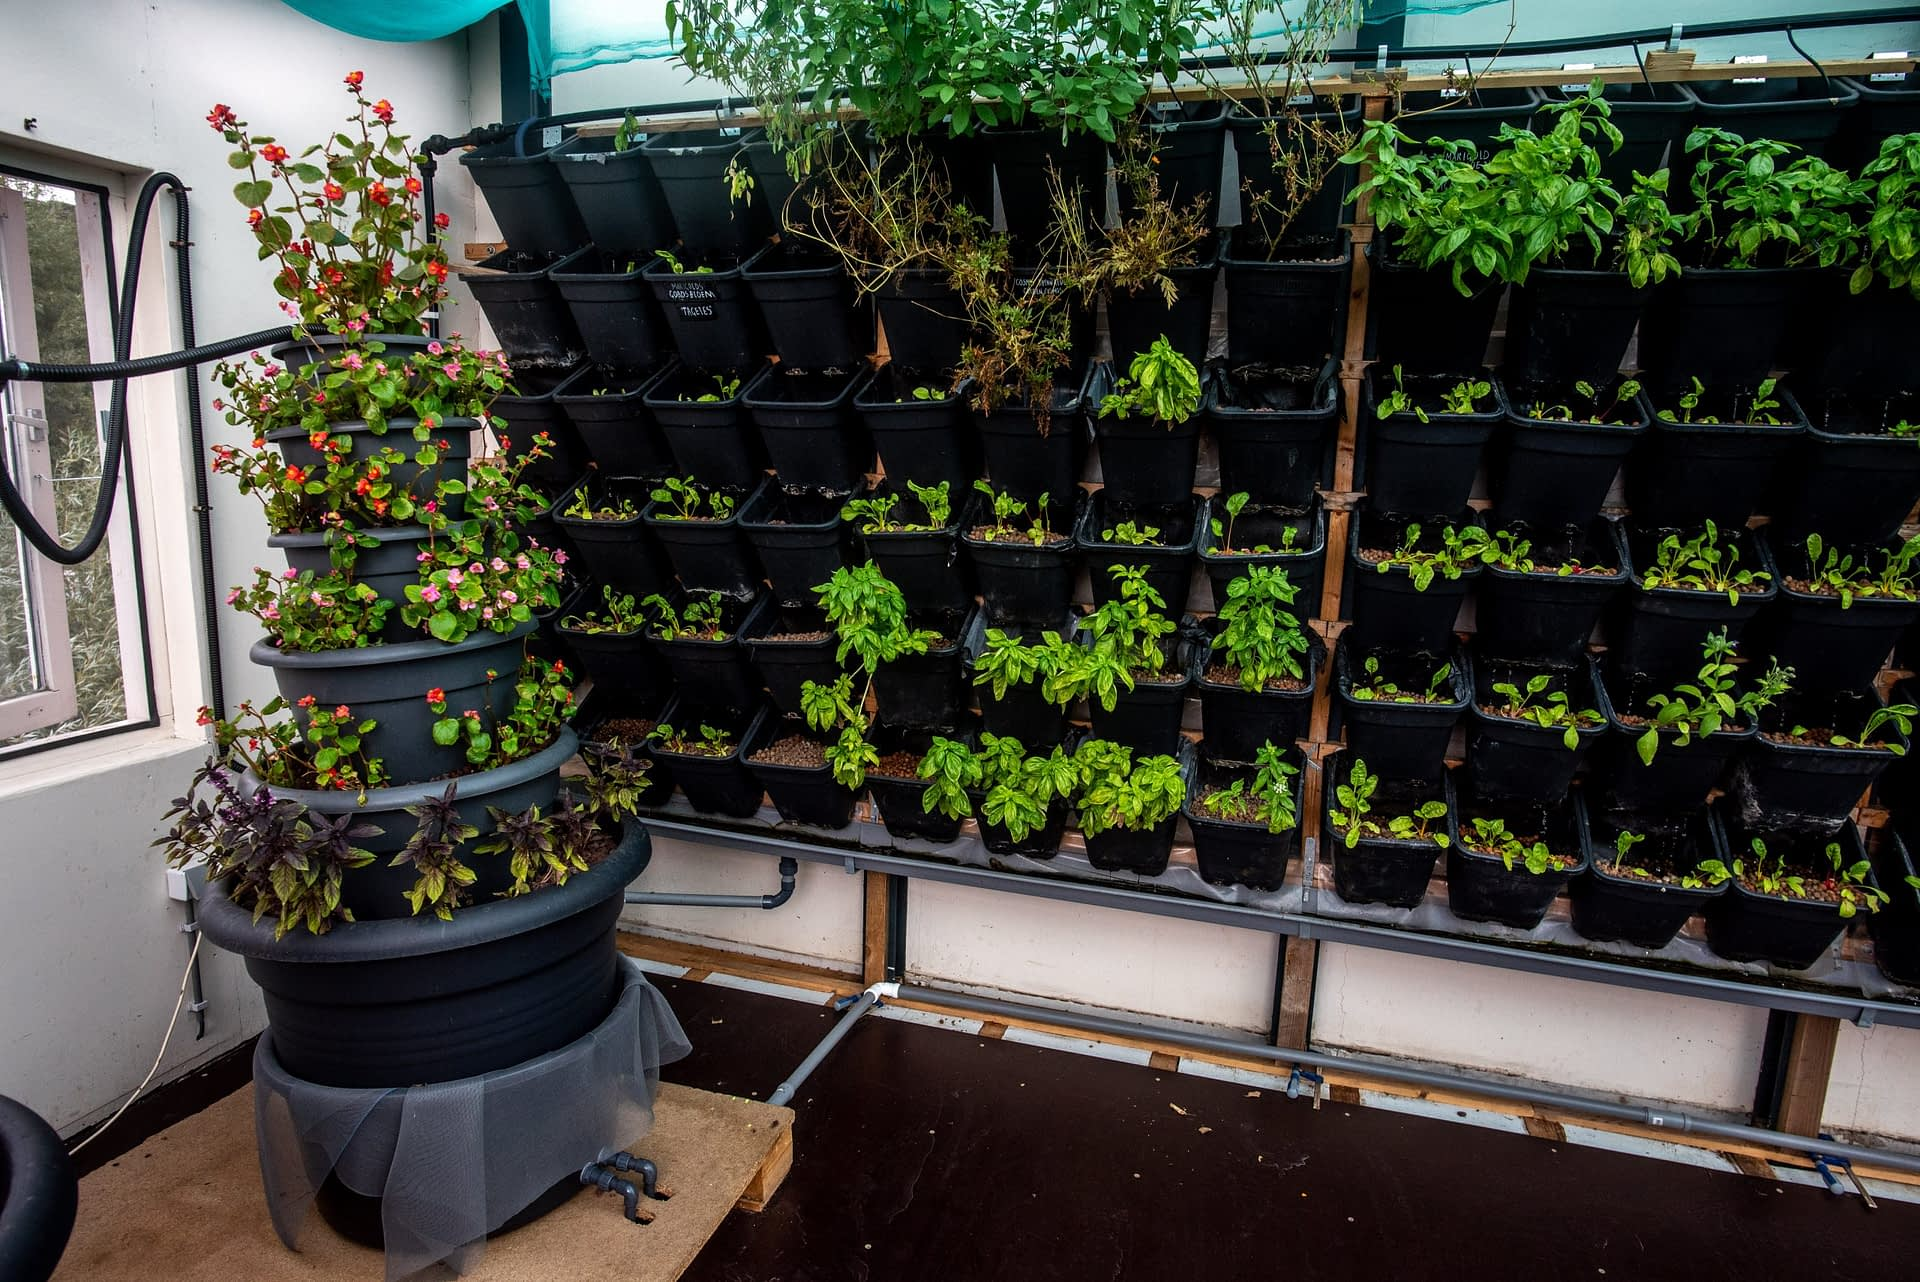 The aquaponics greenhouse will function as a hub for knowledge dissemination of aquaponics techniques, equipping locals with the capability to develop their own aquaponics units.